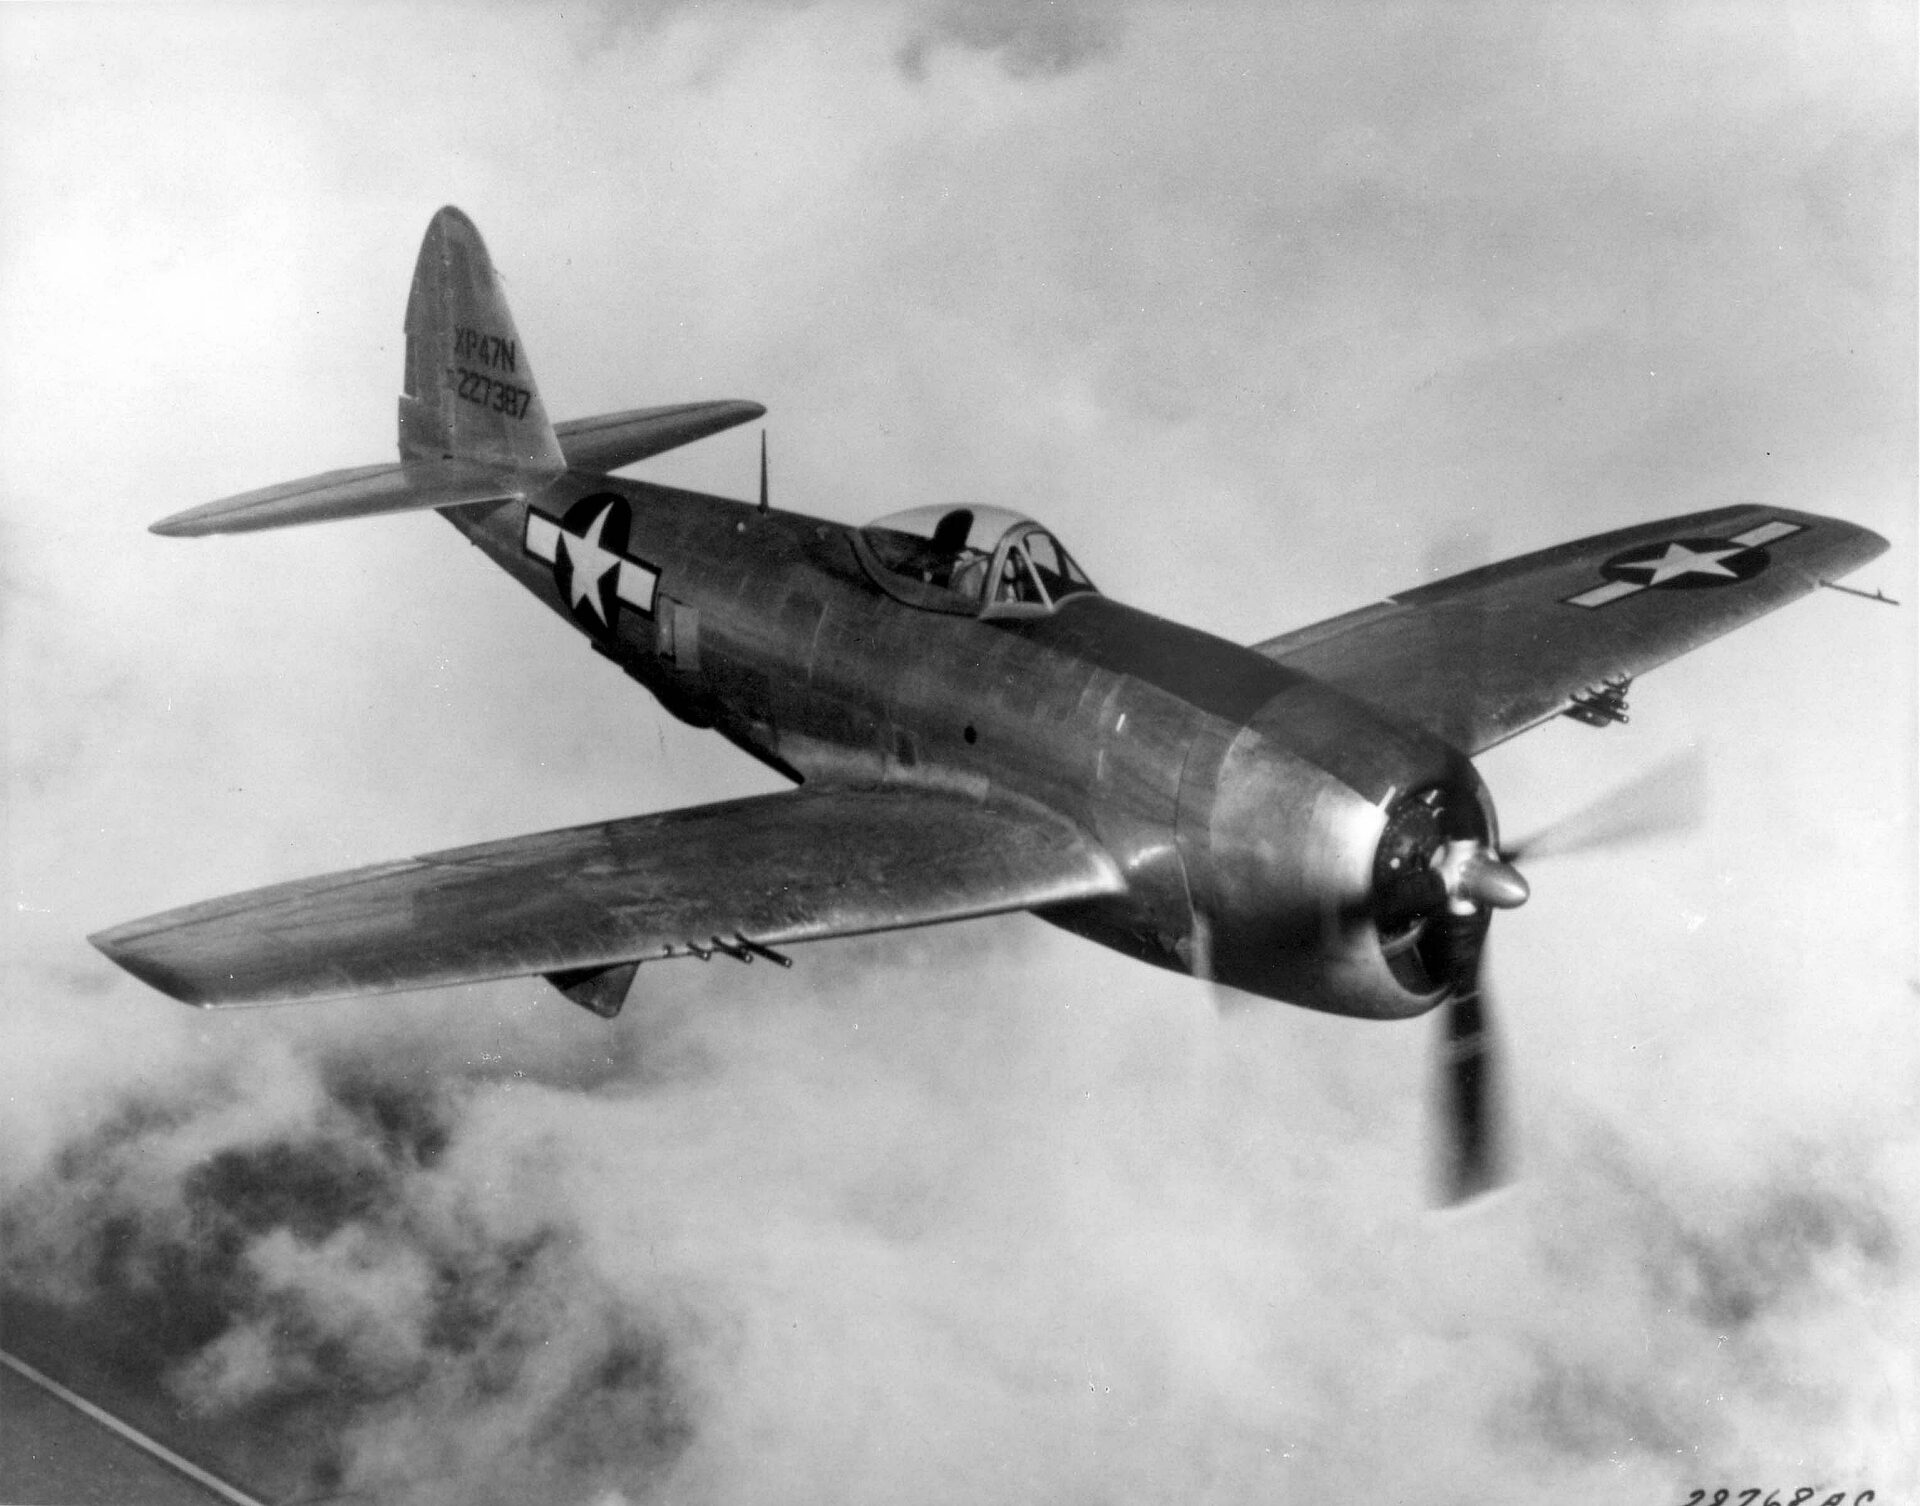 WW2 P-47 fighter plane patrolling the Pacific.